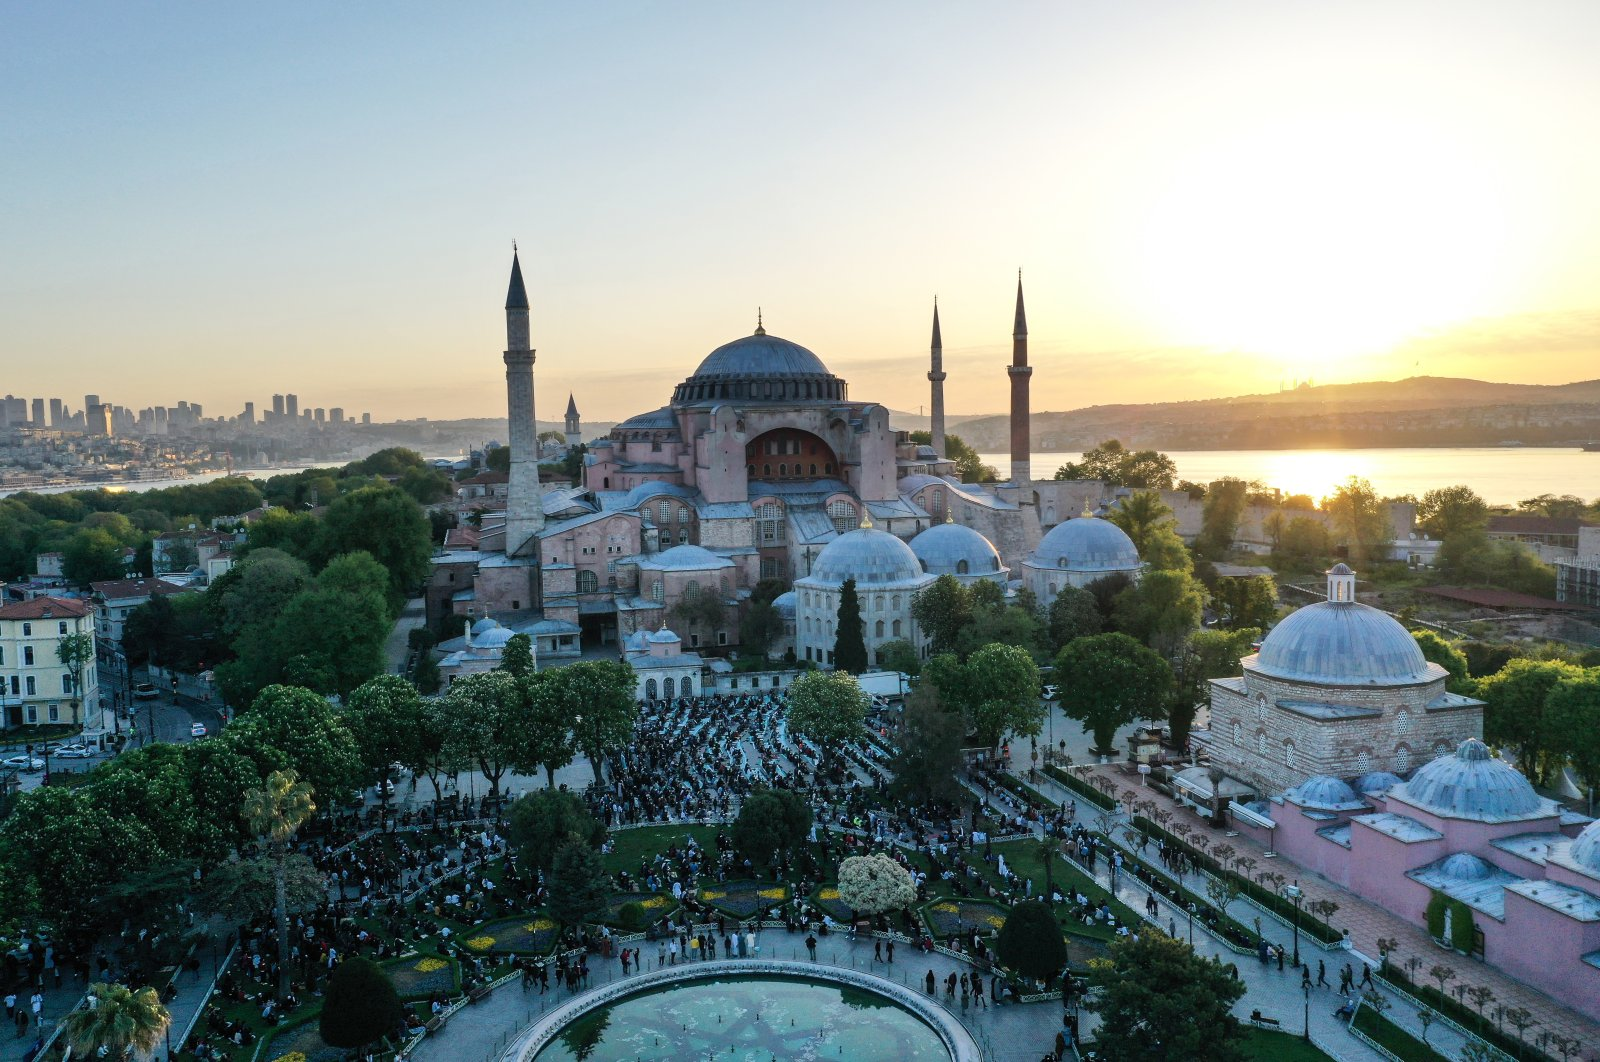 The Hagia Sophia Grand Mosque in the historic Sultanahmet district of Istanbul is seen during bayram prayers on the first day of Eid al-Fitr, which marks the end of the holy month of Ramadan, Istanbul, Turkey, May 13, 2021. (AA Photo)